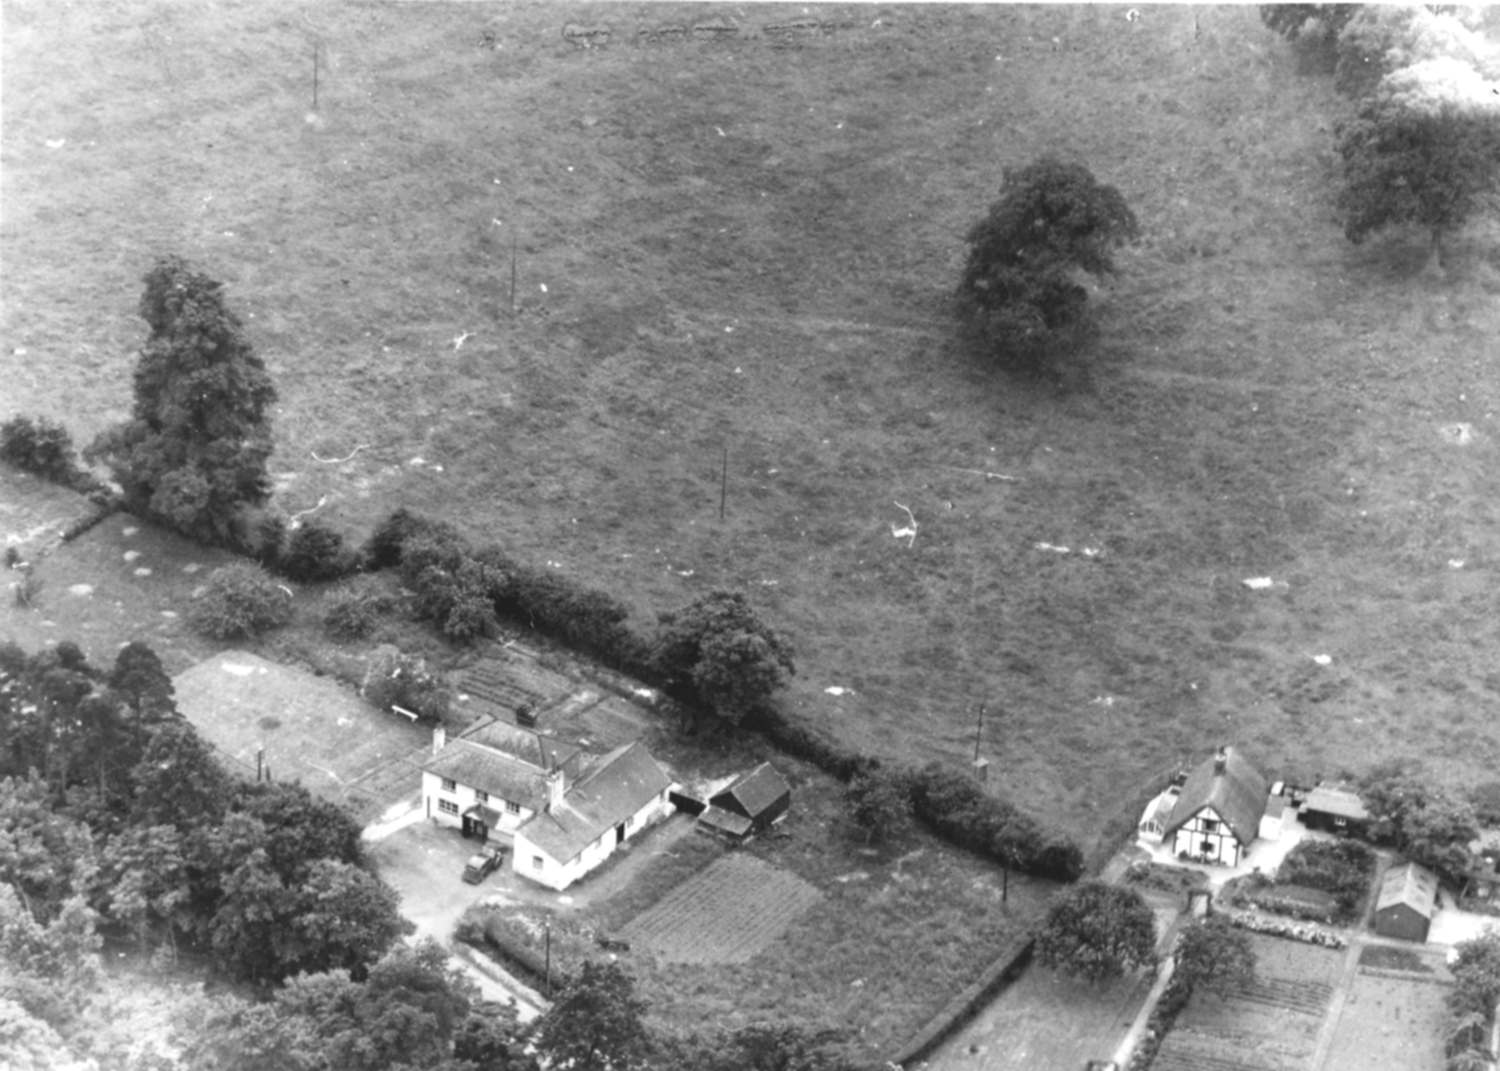 The 'Mole' P.H. and the 'Glen' from the air